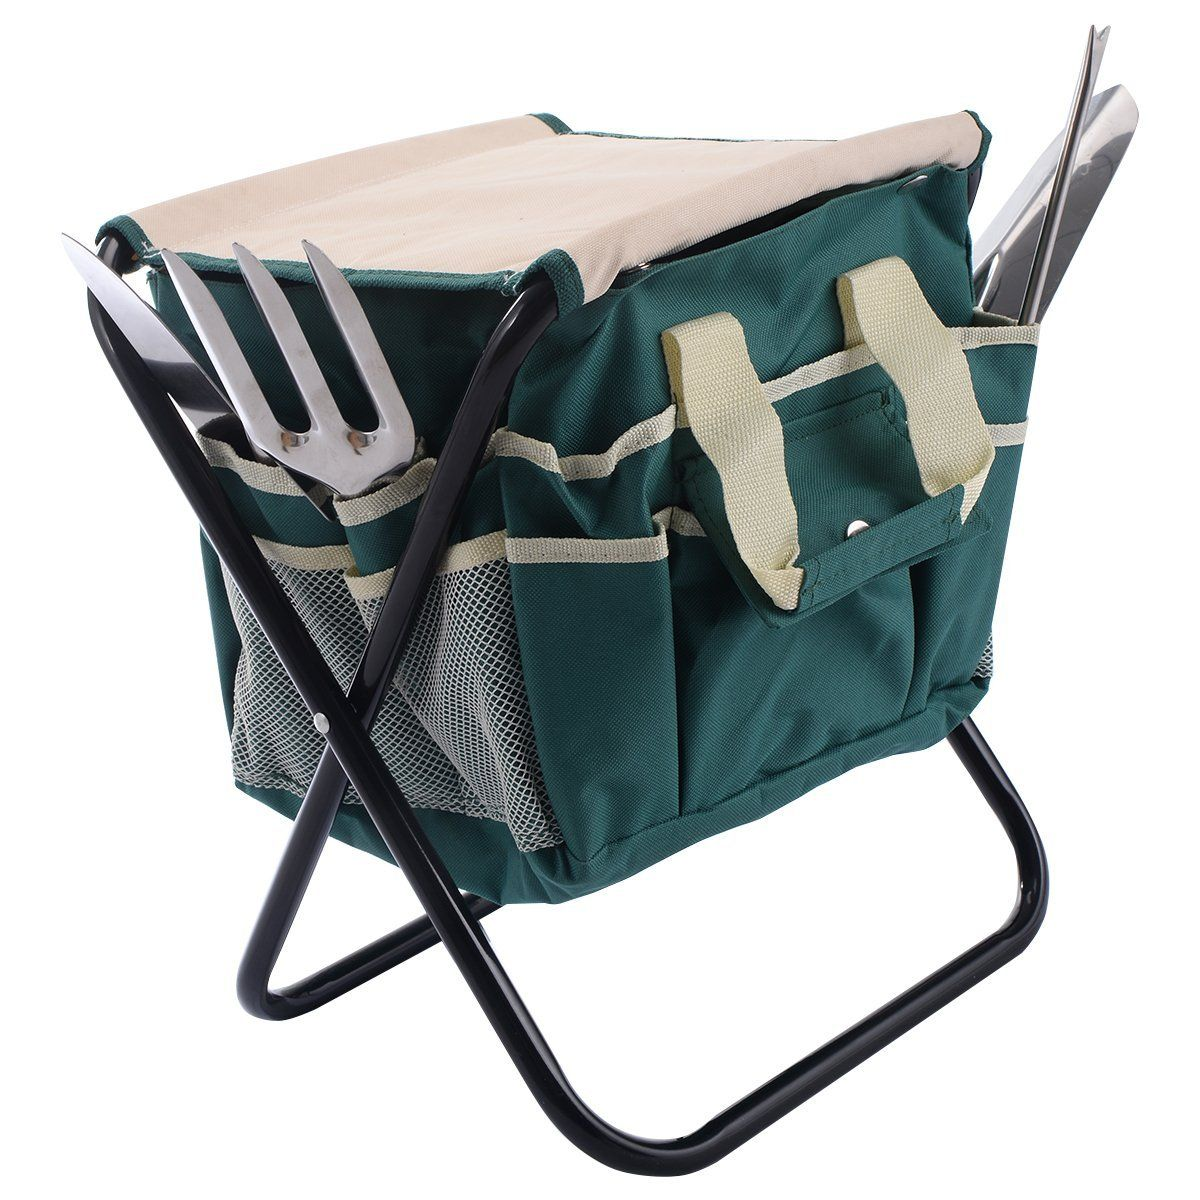 kneeler bosmere seat p the garden folding specialty stool depot home and in gardening